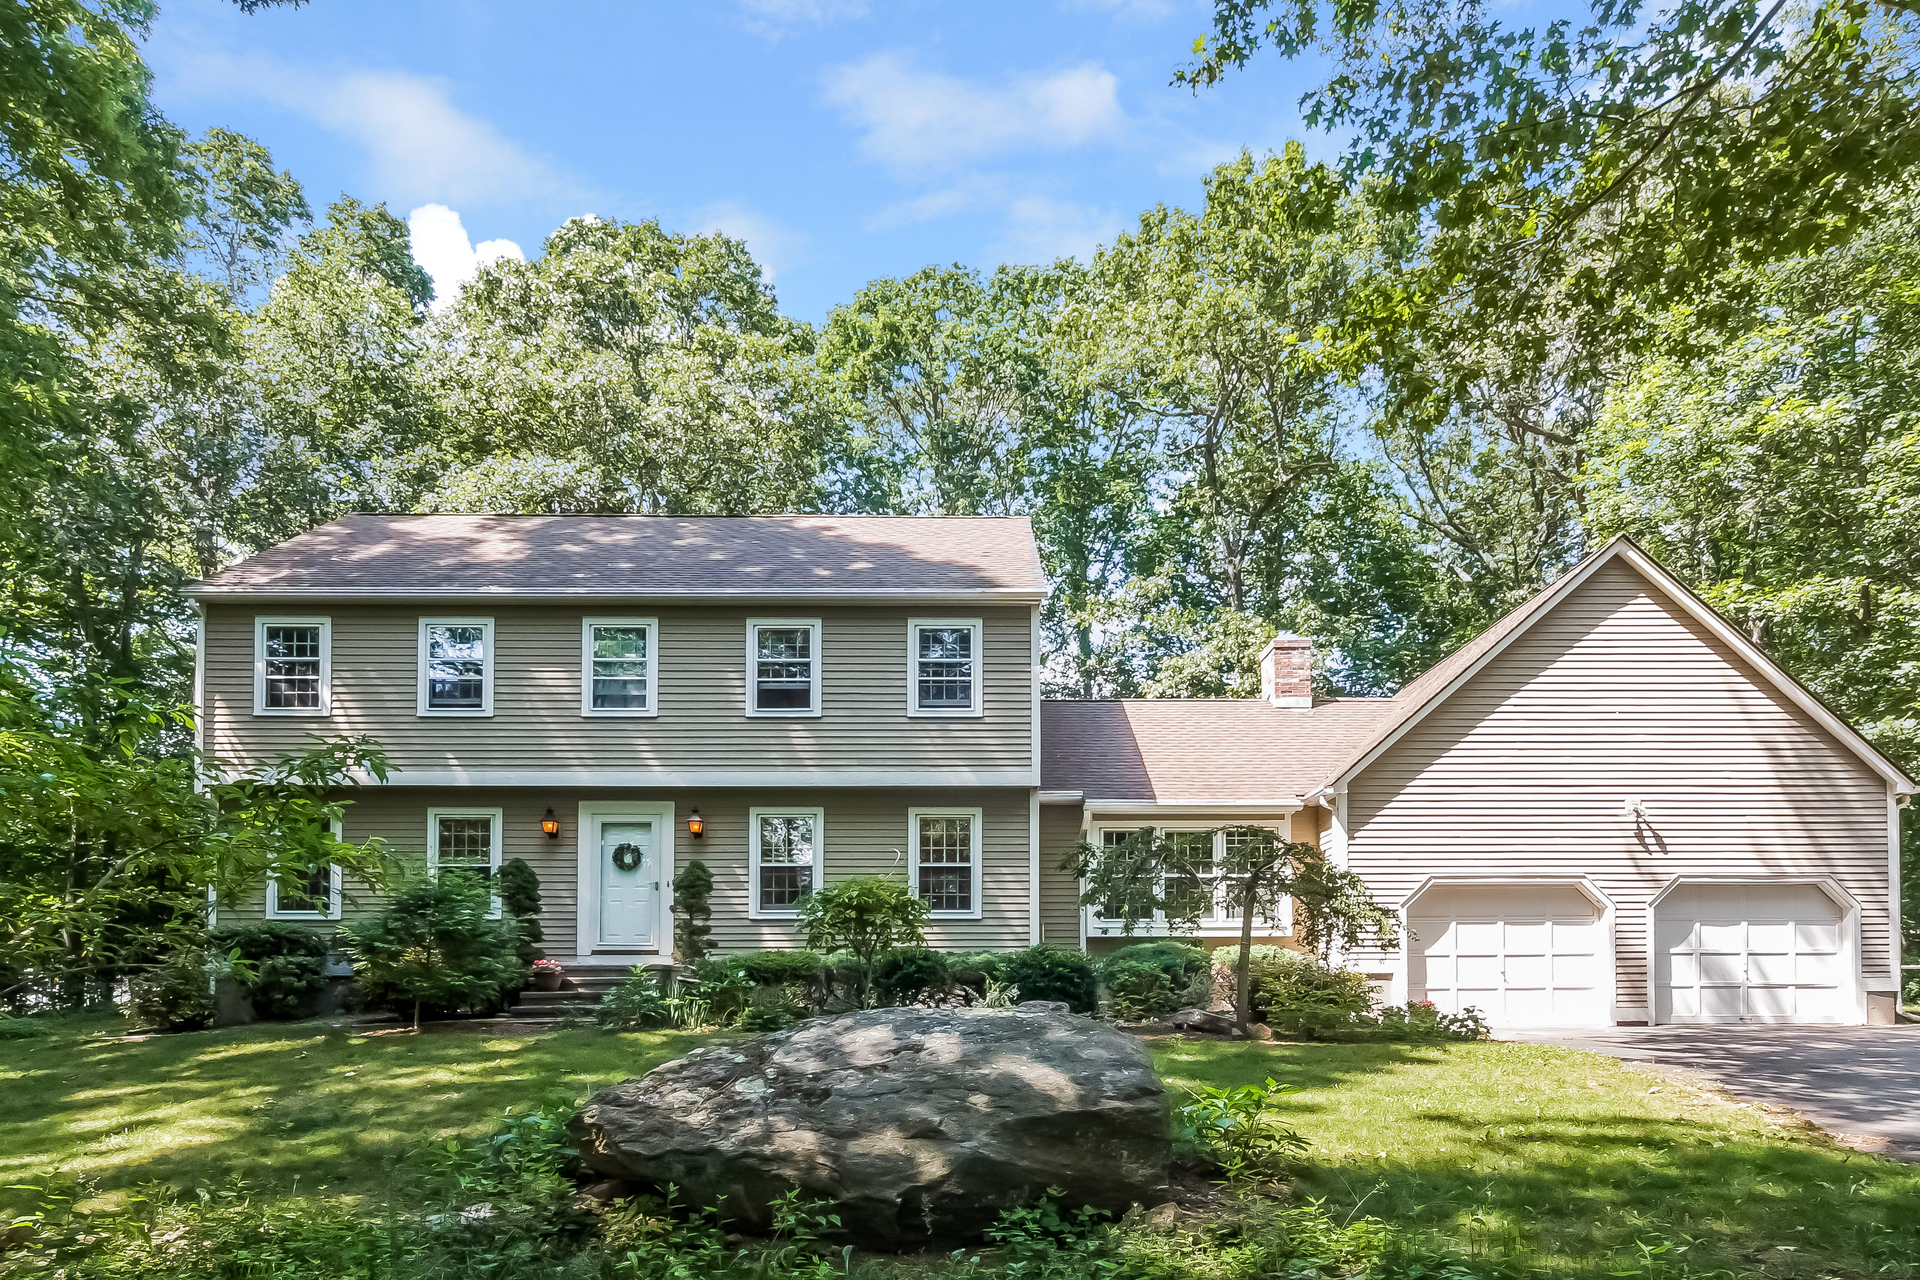 Single Family Home for Sale at 194 Opening Hill Rd Madison, Connecticut, 06443 United States